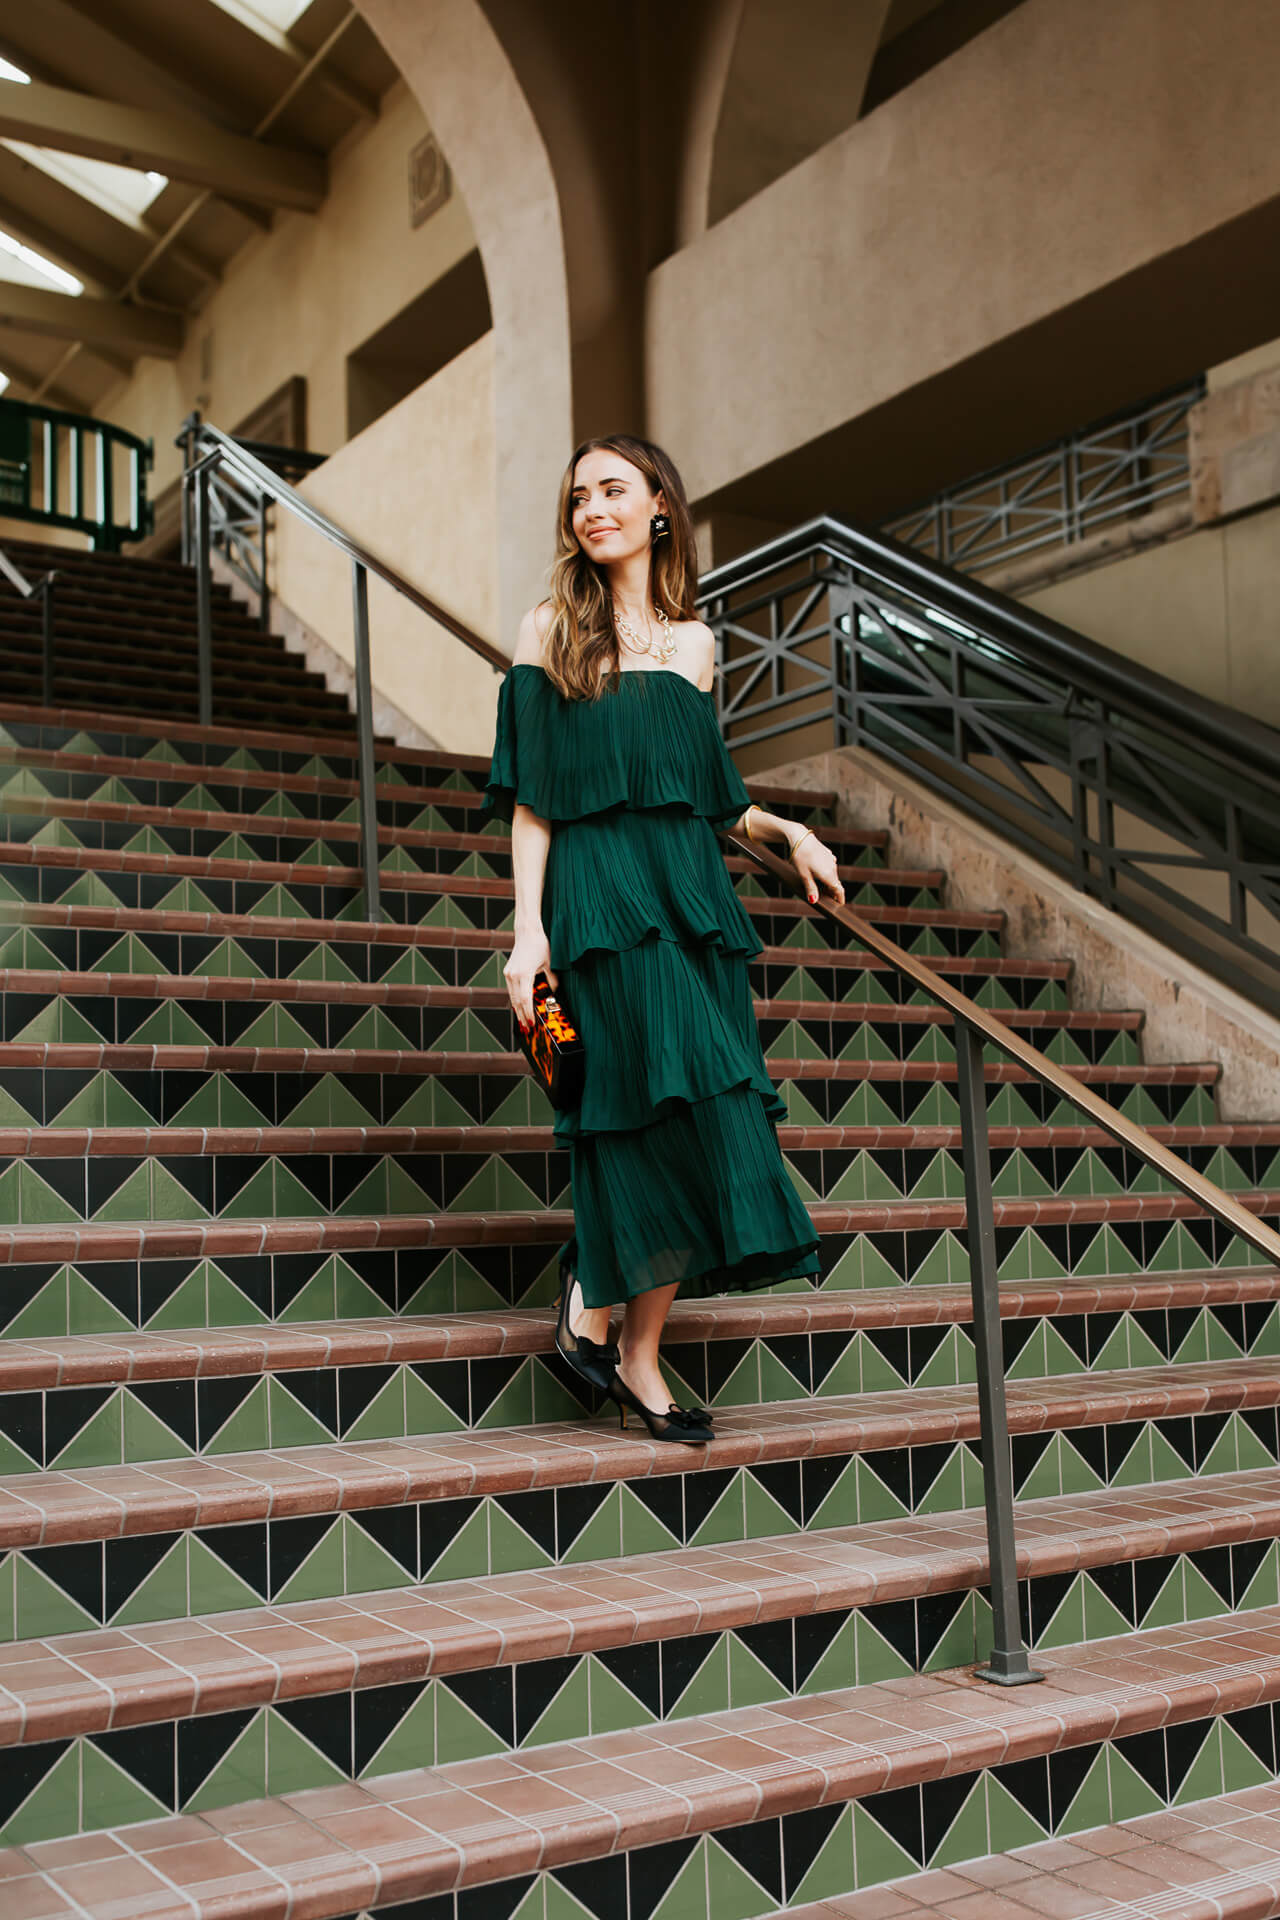 A holiday dress for a special evening out! - M Loves M @marmar